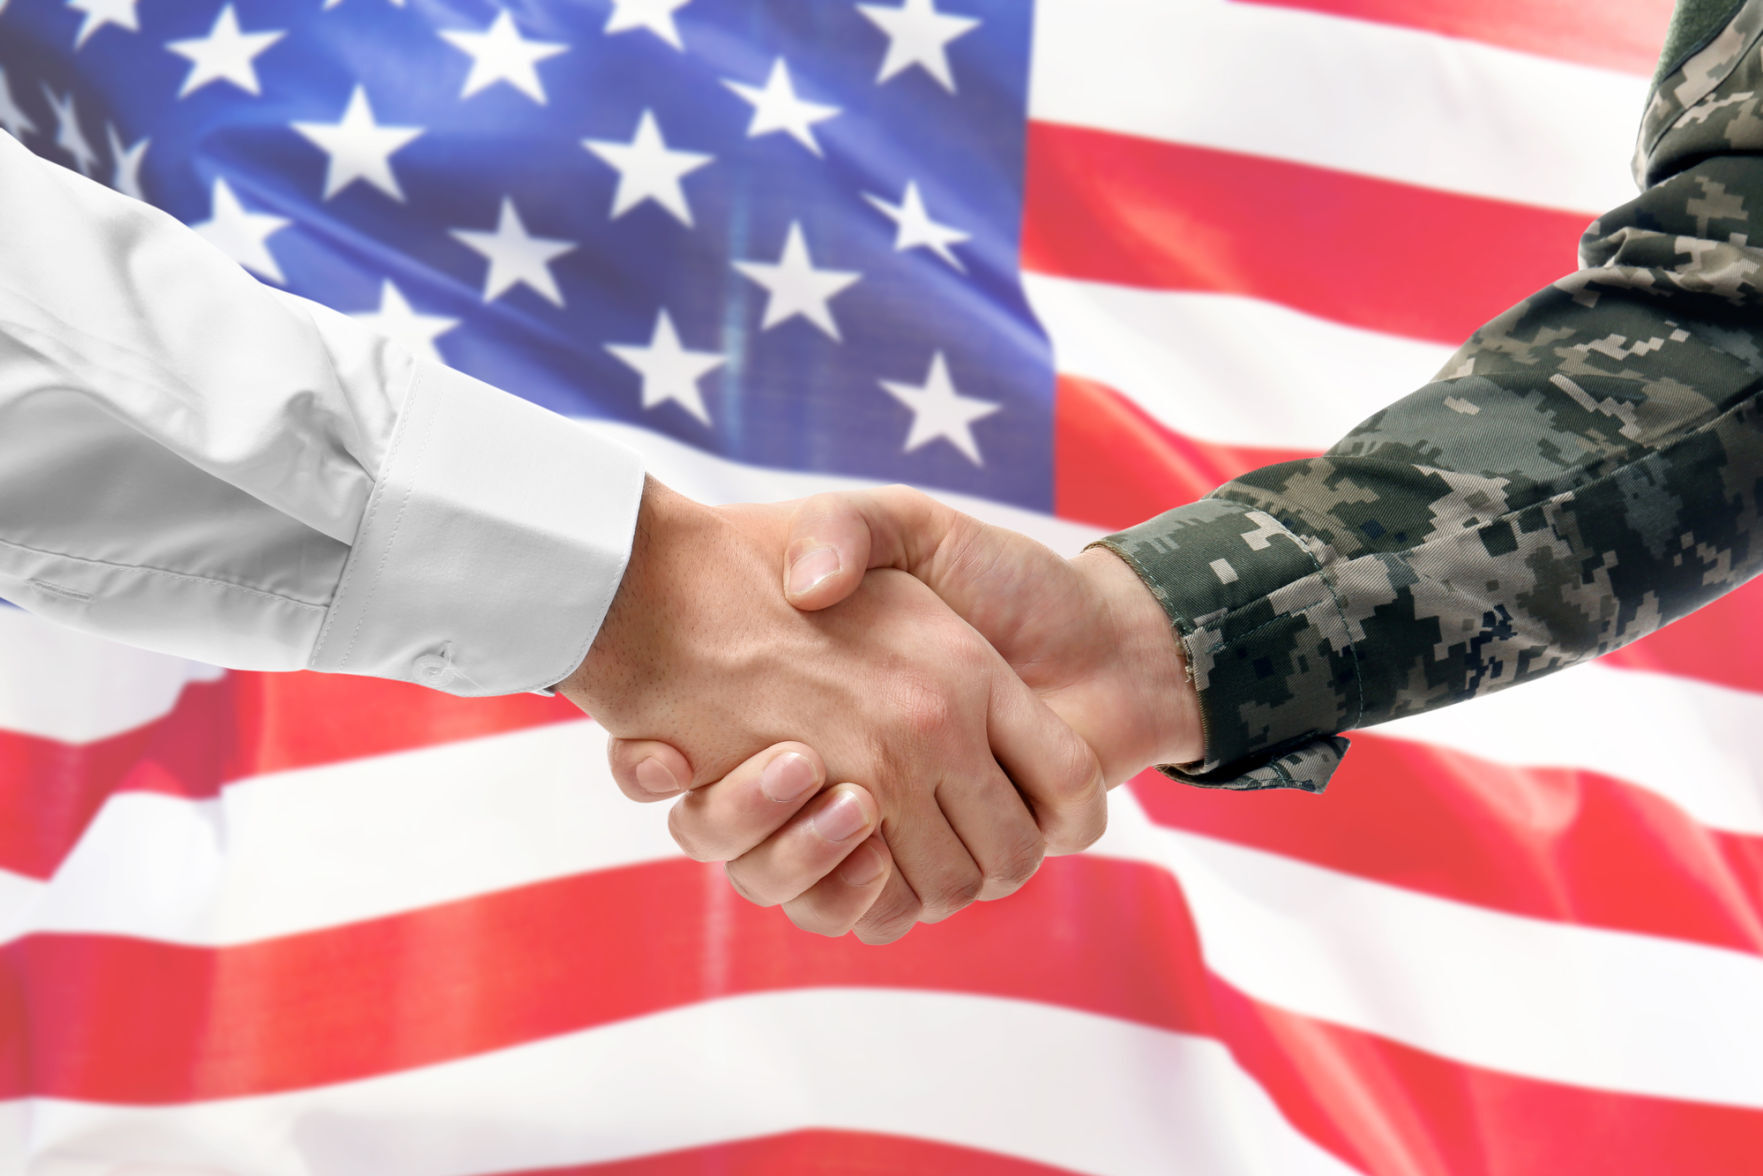 USA military man in uniform and civil man in suit shaking hands with national flag on background - Liberia